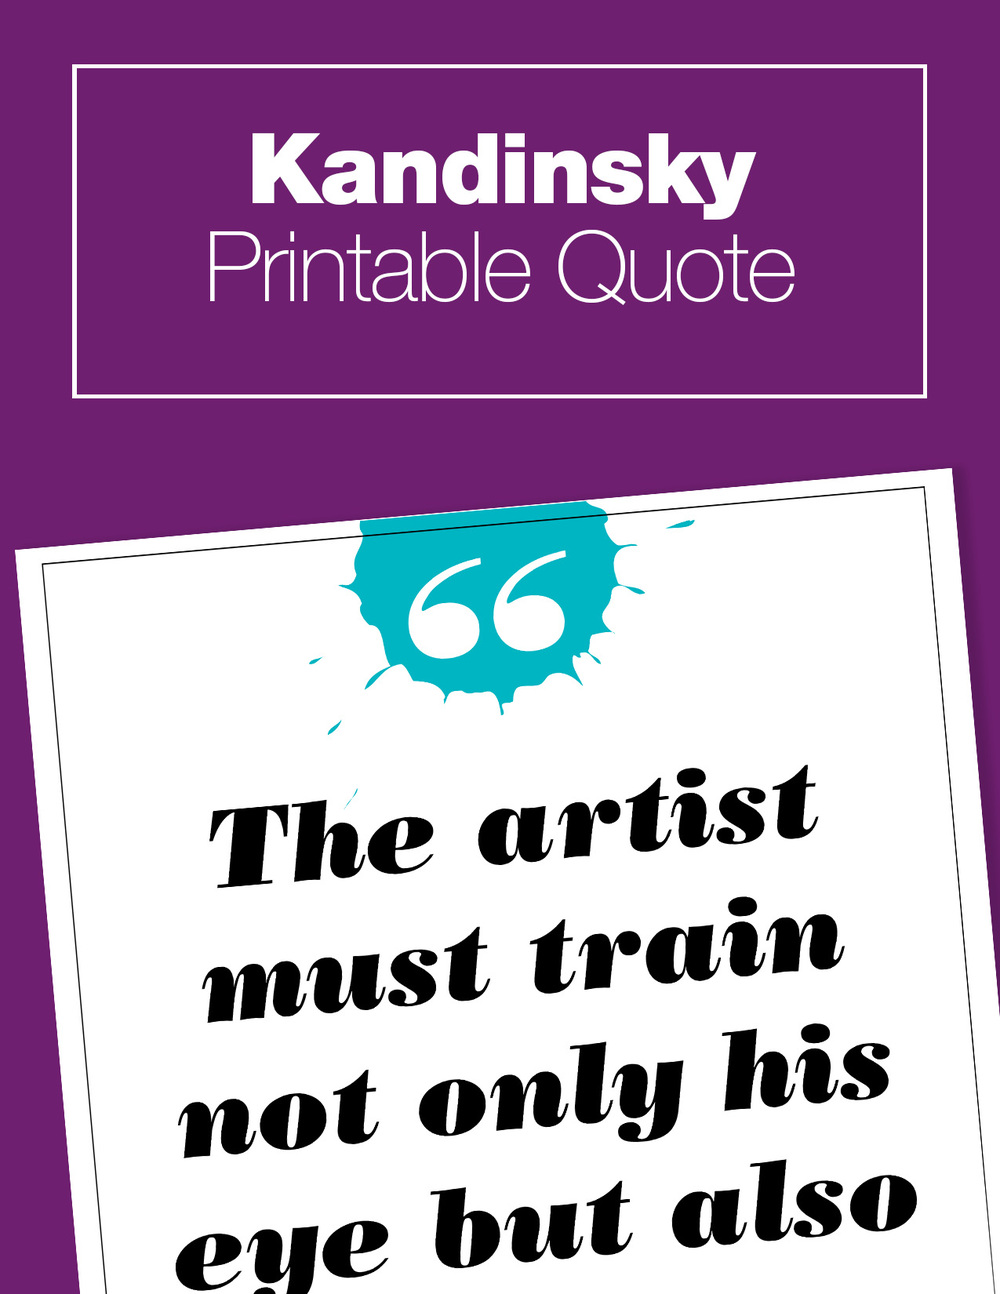 Kandinsky Art History Study for Kids. Printable quote to display in your home art area.